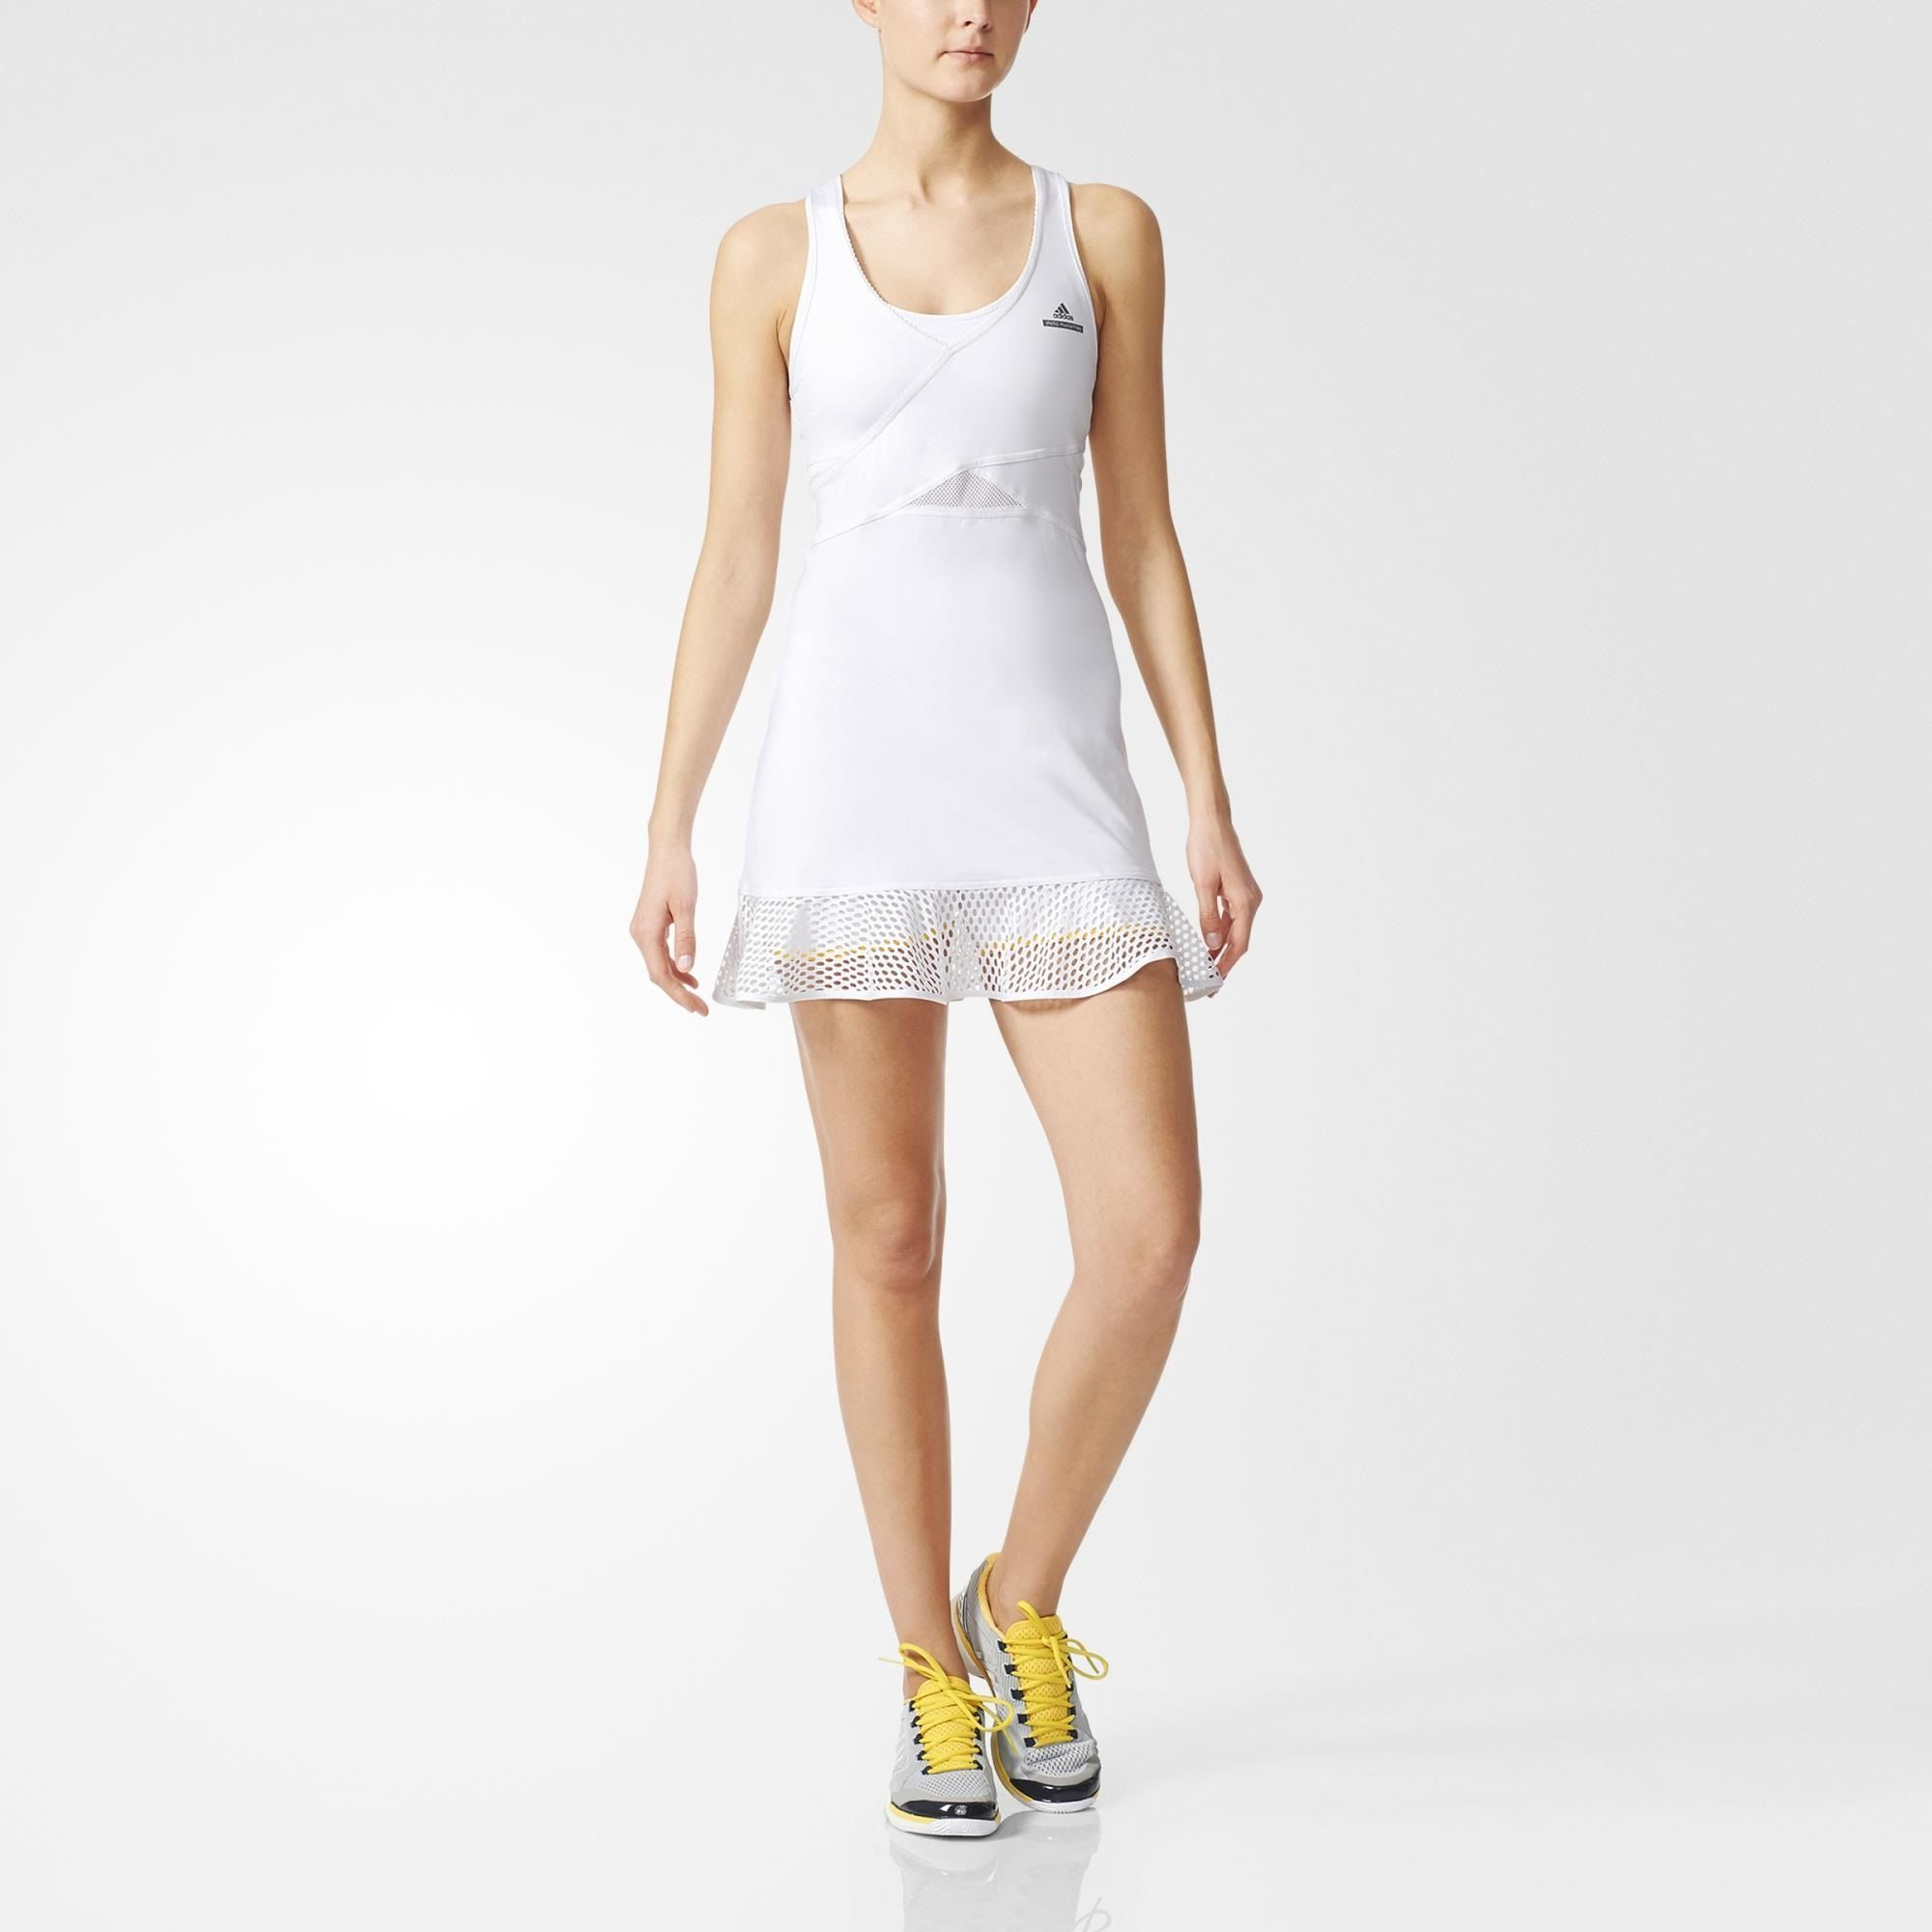 Caroline Wozniacki's Wimbledon dress! adidas Stella McCartney